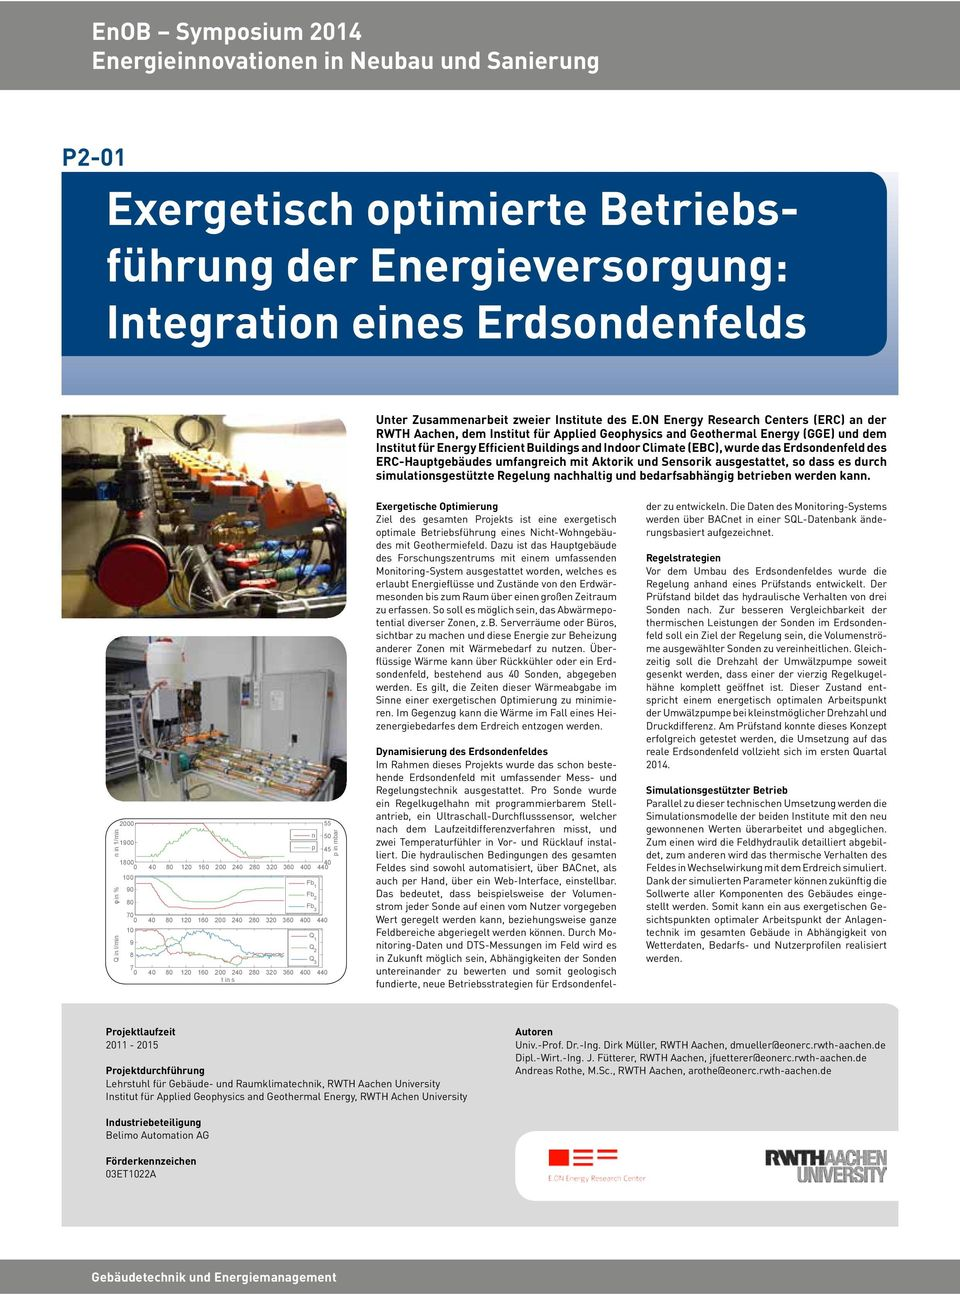 ON Energy Research Centers (ERC) an der RWTH Aachen, dem Institut für Applied Geophysics and Geothermal Energy (GGE) und dem Institut für Energy Efficient Buildings and Indoor Climate (EBC), wurde